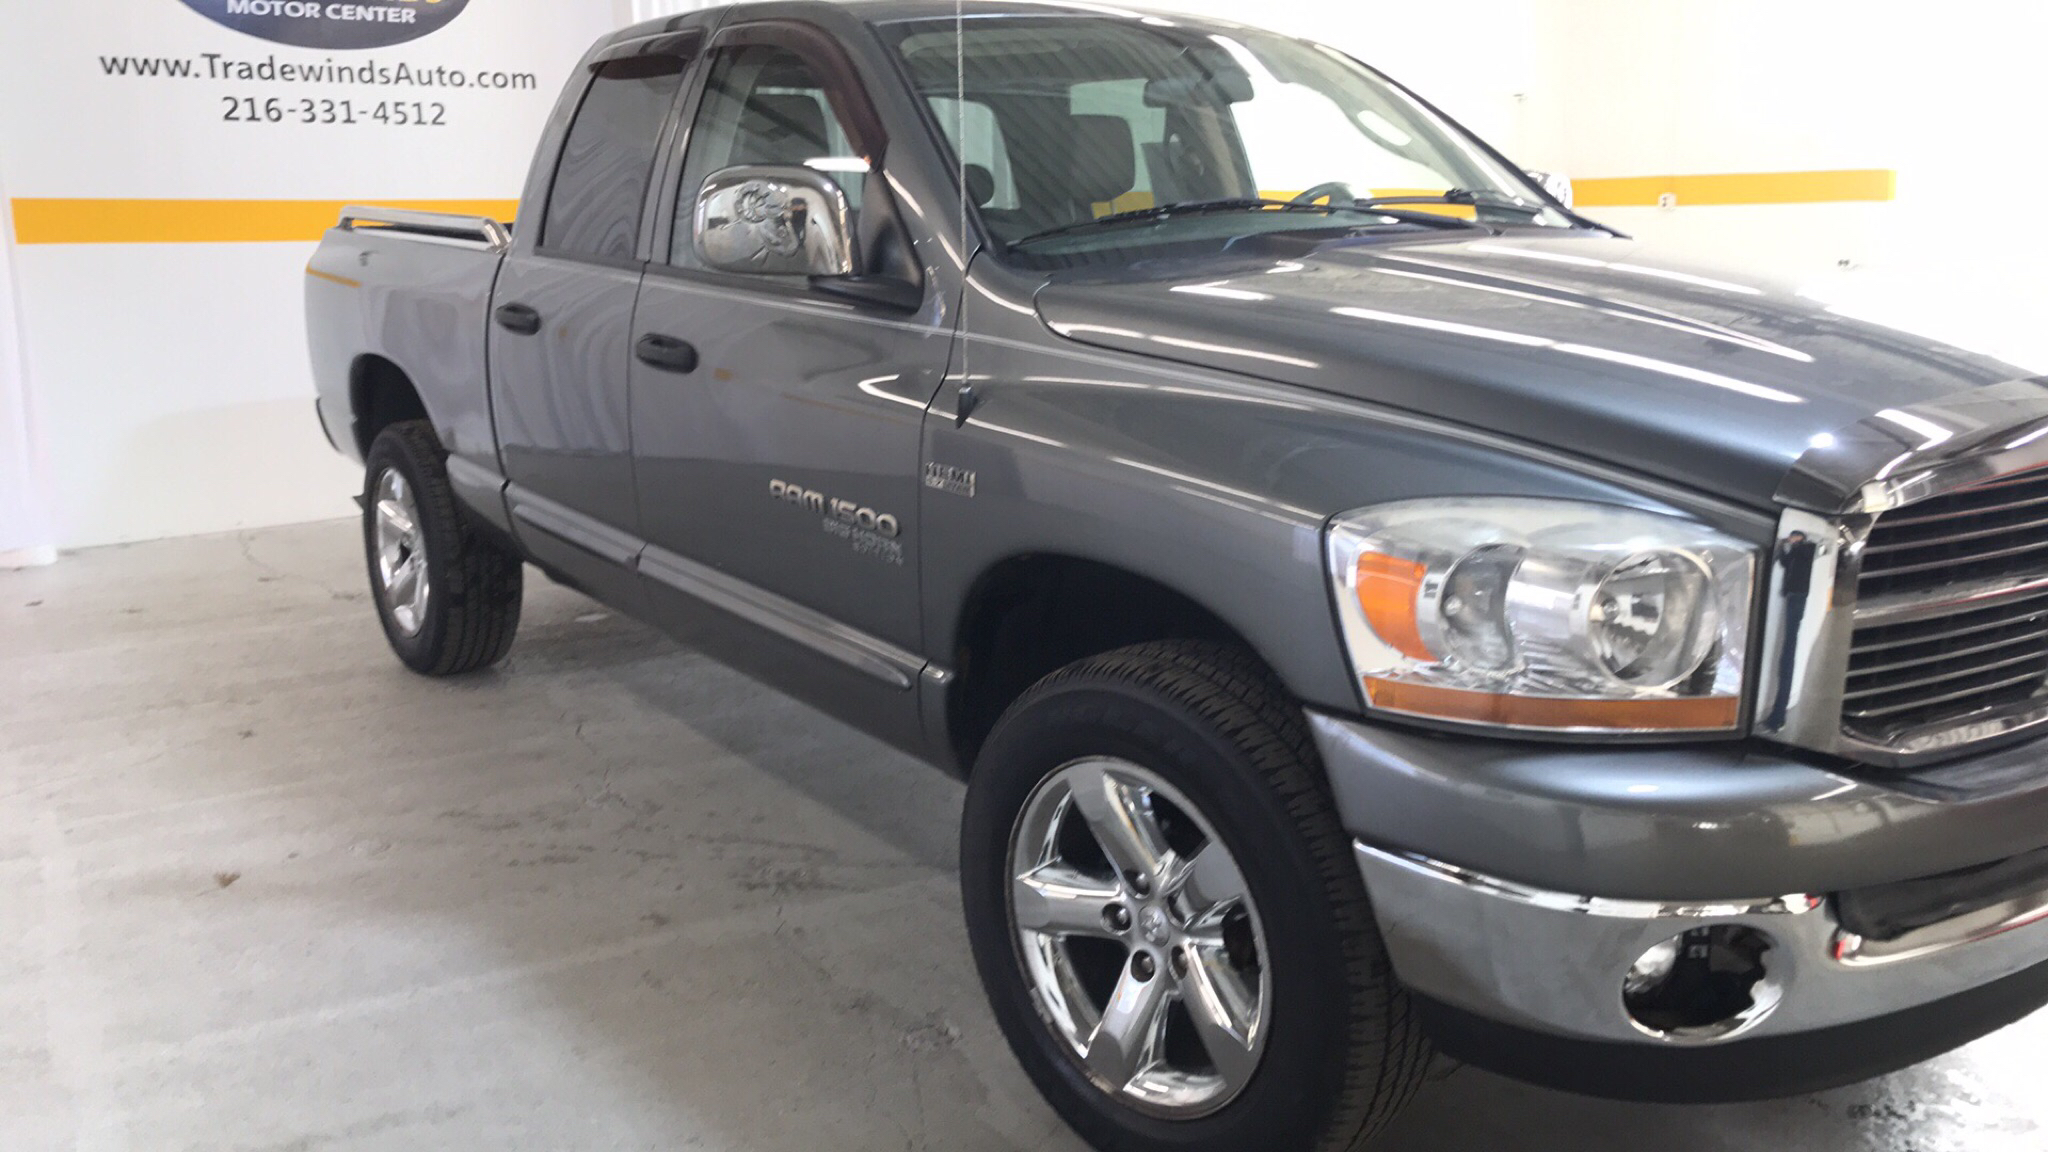 2006 DODGE RAM 1500 SPORT LONGHORN for sale at Tradewinds Motor Center